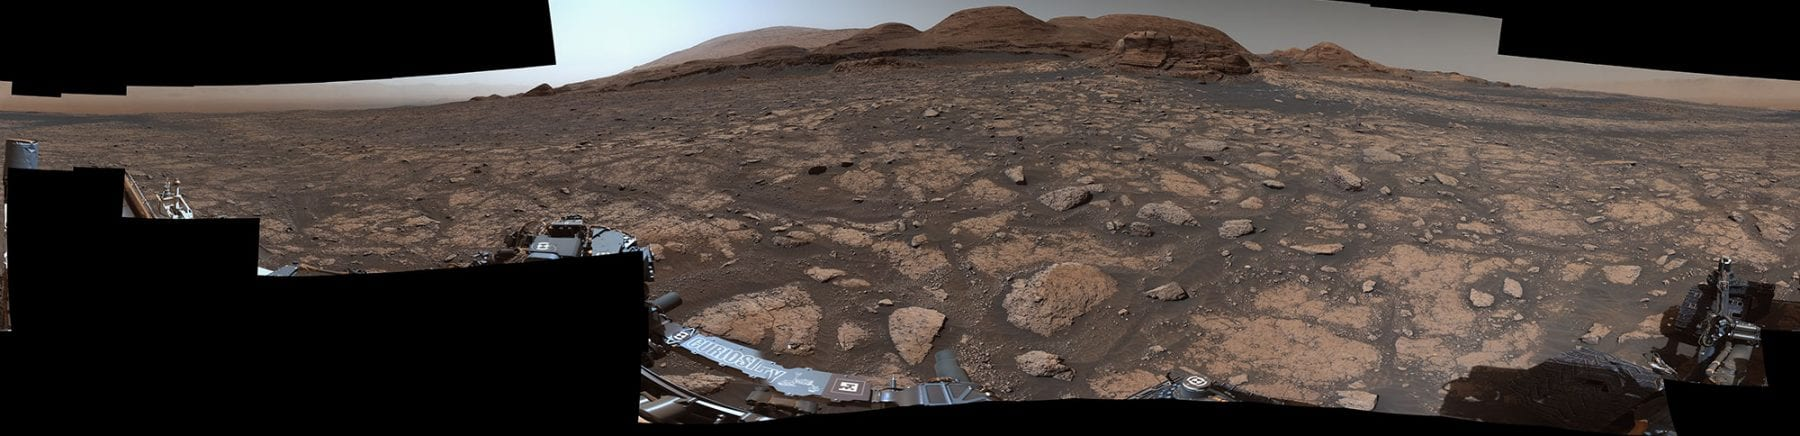 In another composition of images from the Mastcam, we see this 360-degree panorama of Mont Mercou and its surroundings. This image was composed of 126 individual shots on March 3, days before Curiosity reached the vicinity of the landmark. Credit: NASA/JPL-Caltech/MSSS